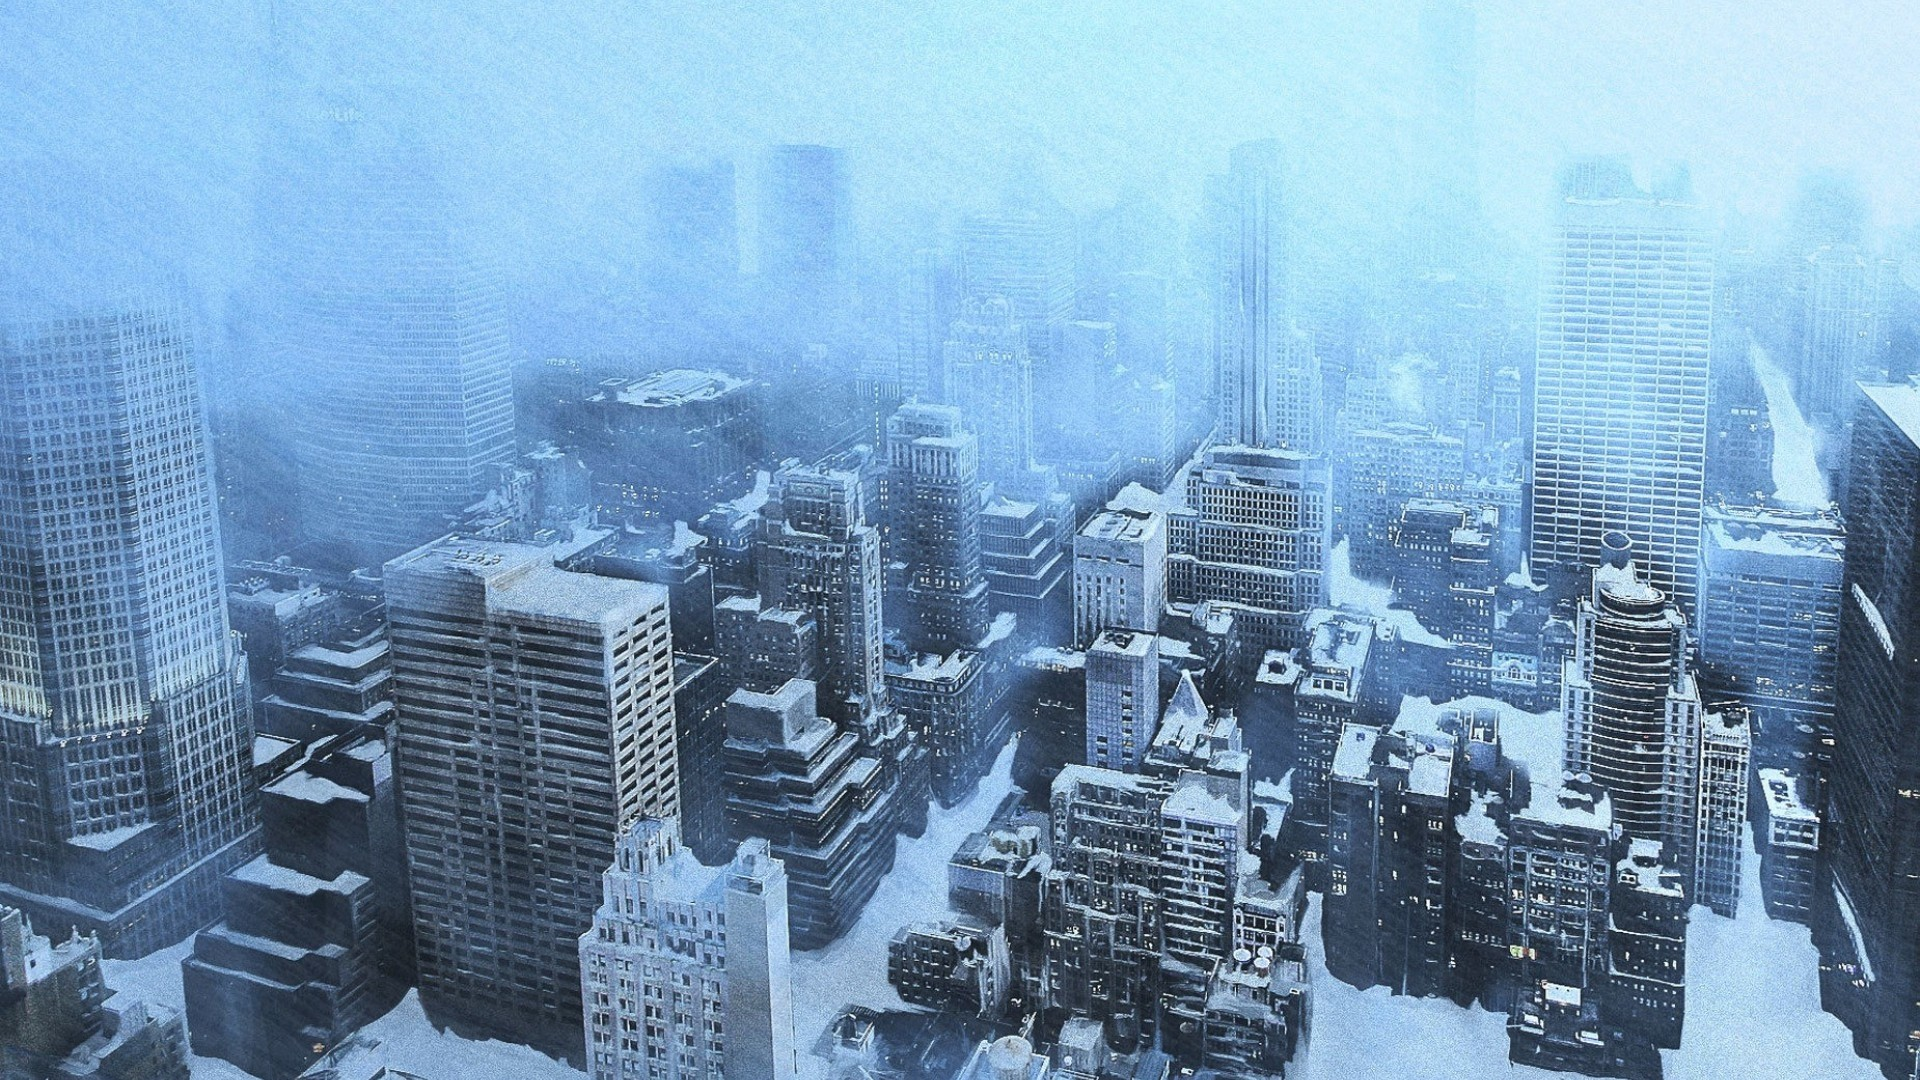 Snow falling on skyscrapers, New York City: